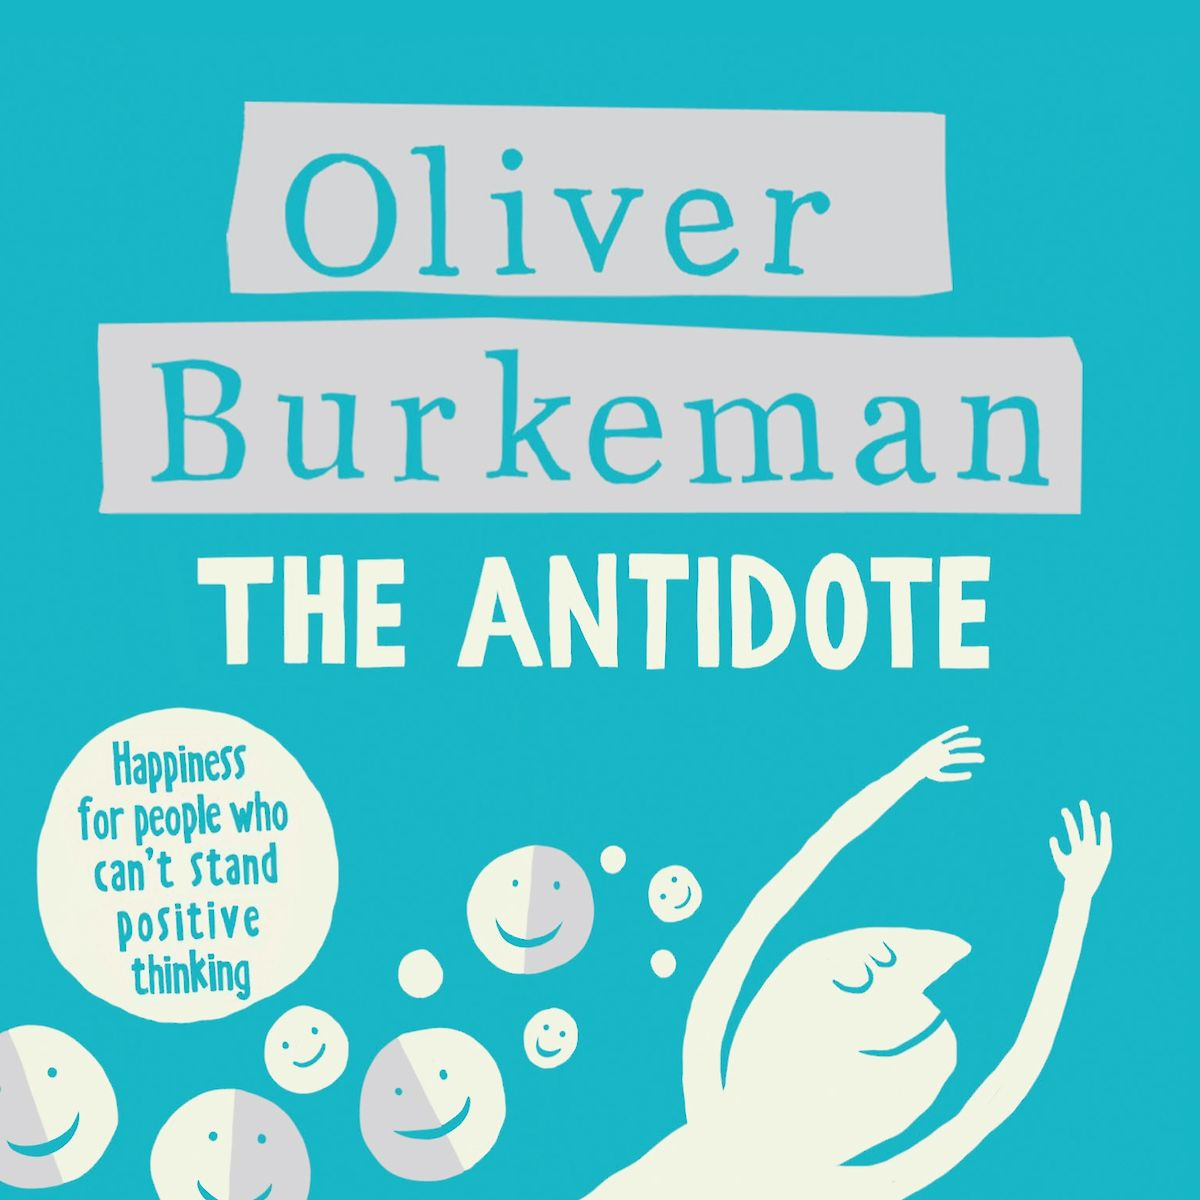 The antidote oliver